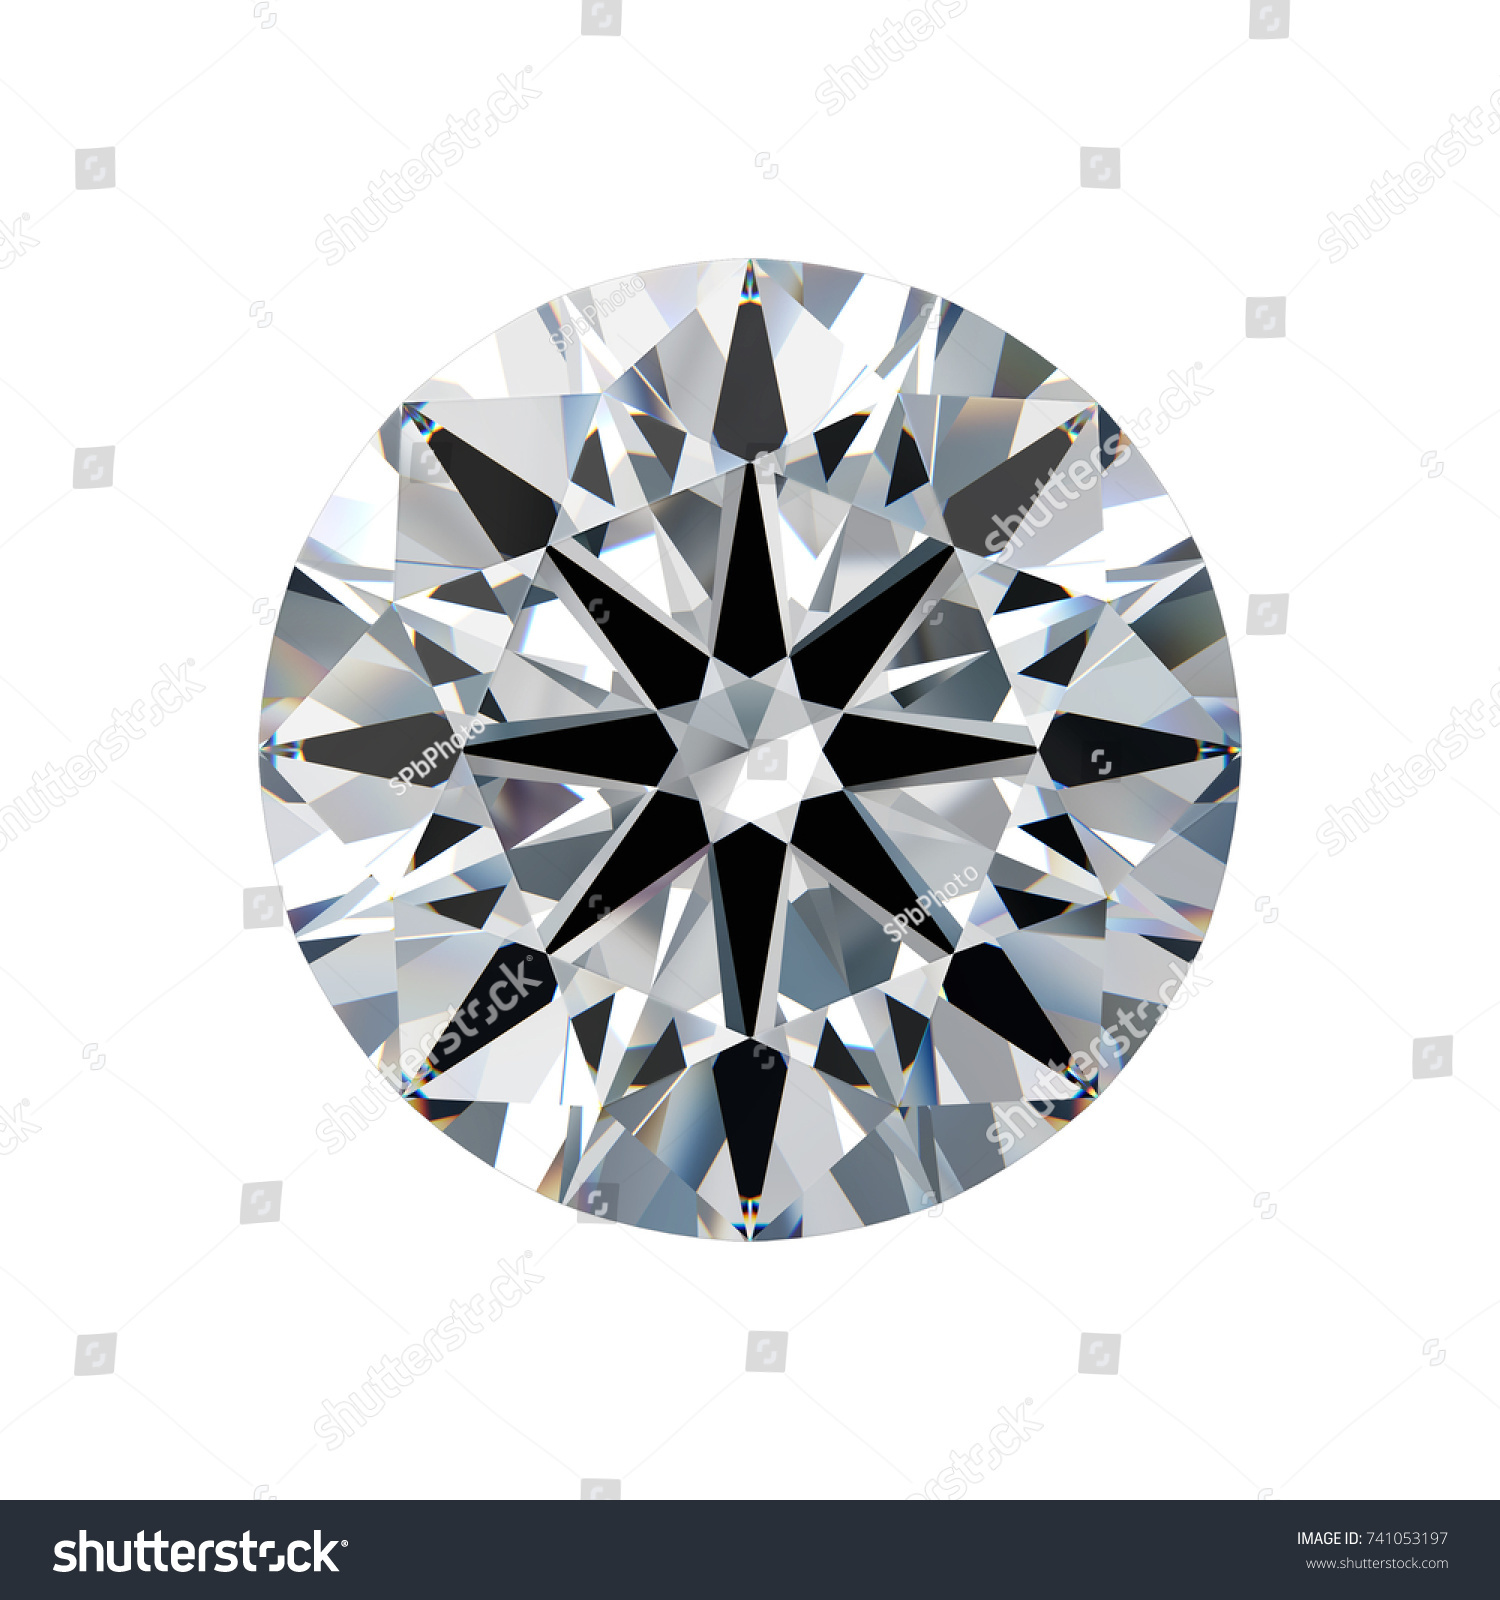 will engagementguide of for tool cut pay re jared what the buying s jaredstore reassure jd a are cms en that cs and you quality diamond getting ideal